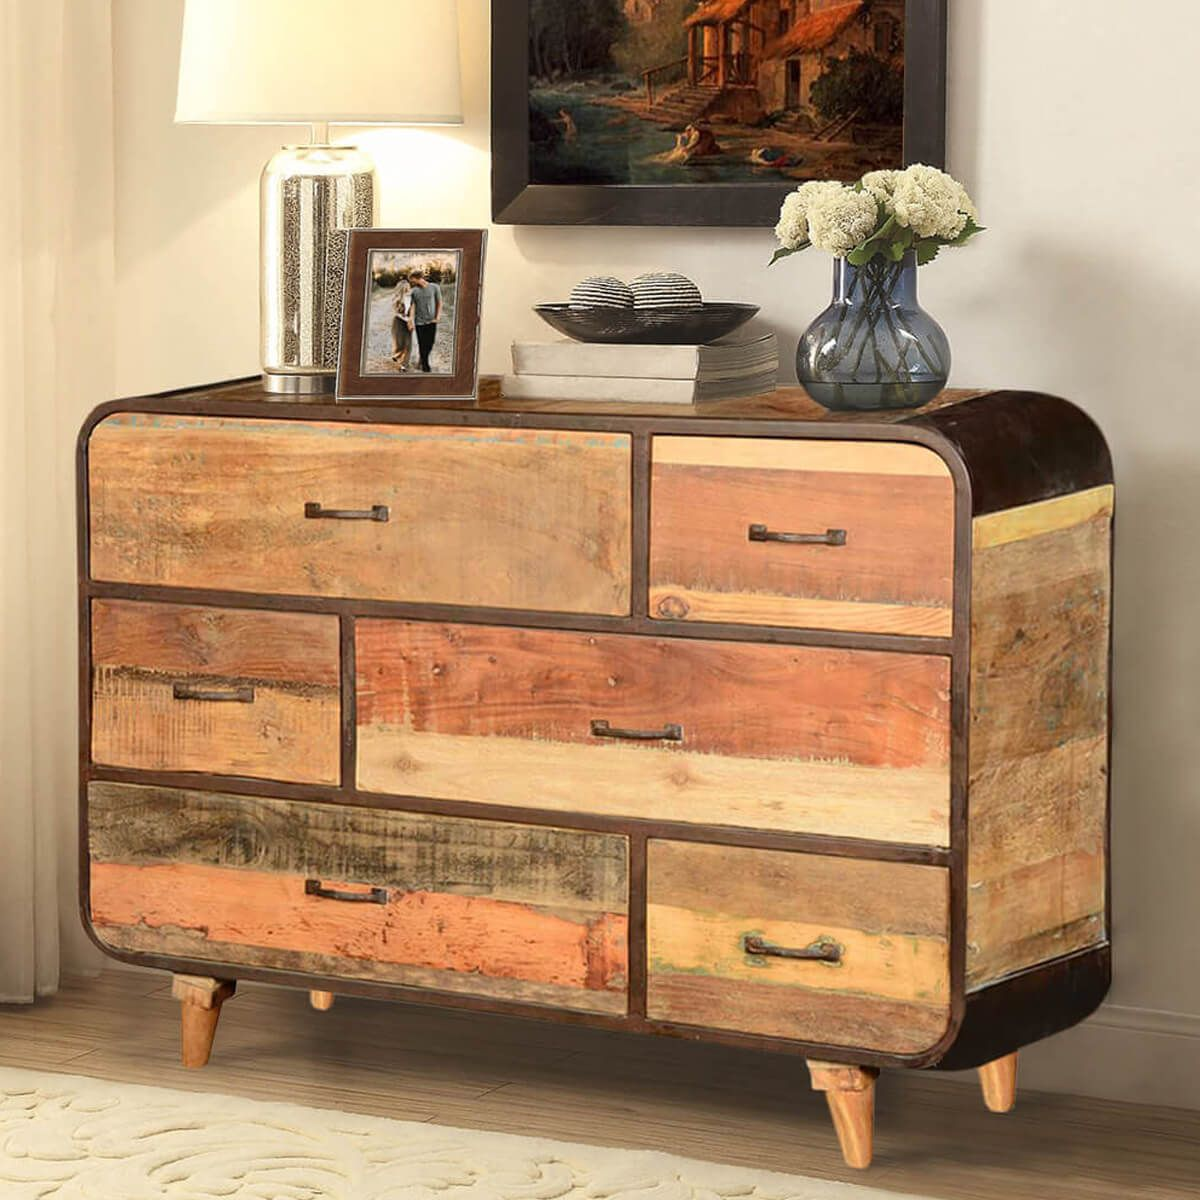 Natural Wood Grain Stripes Round Corners And A Black Iron Frame All Come Together In This Dynamic Fusion Style Dresser Our 60 S Retro Rustic Standing 6